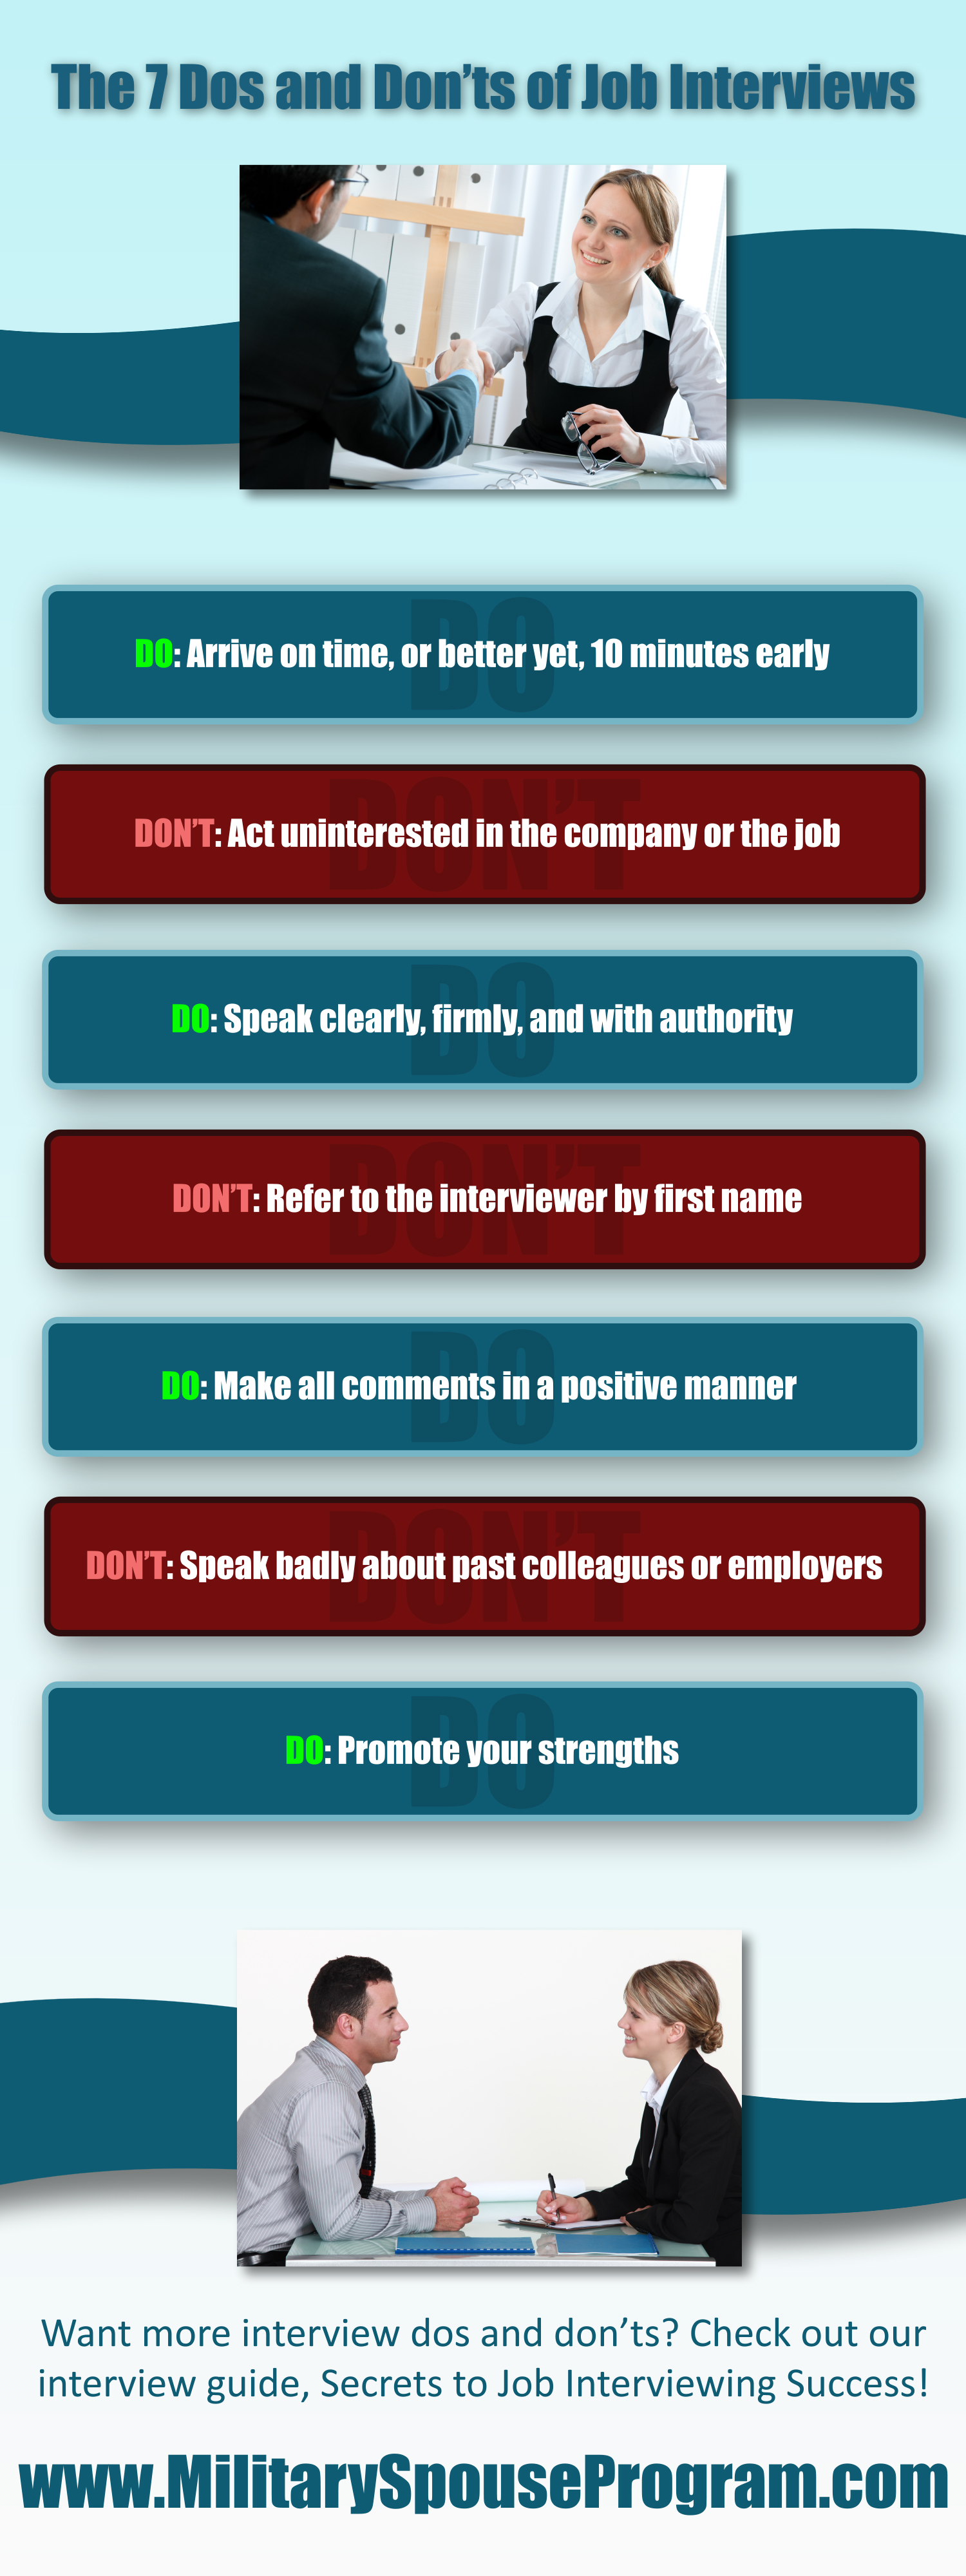 7 dos and donts of job interviews visually